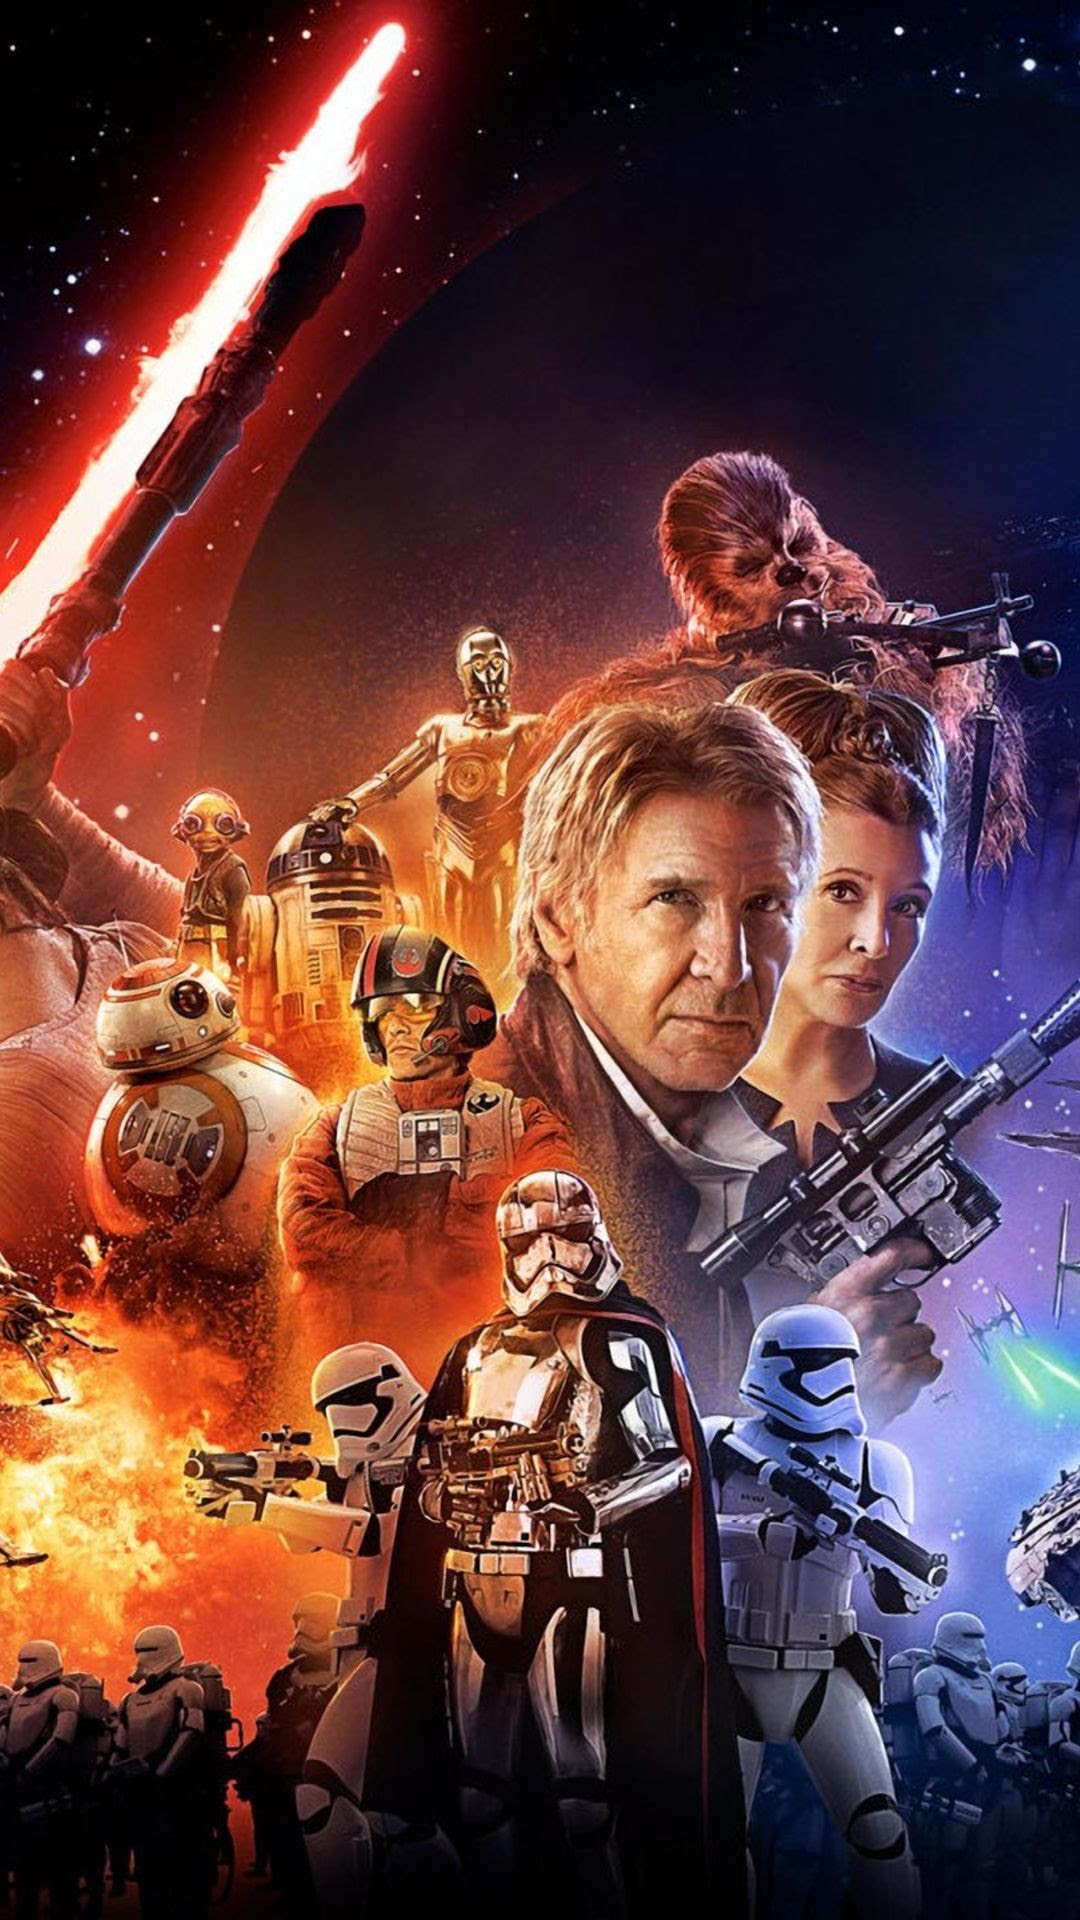 The Force Awakens Poster Wallpaper 70 Images